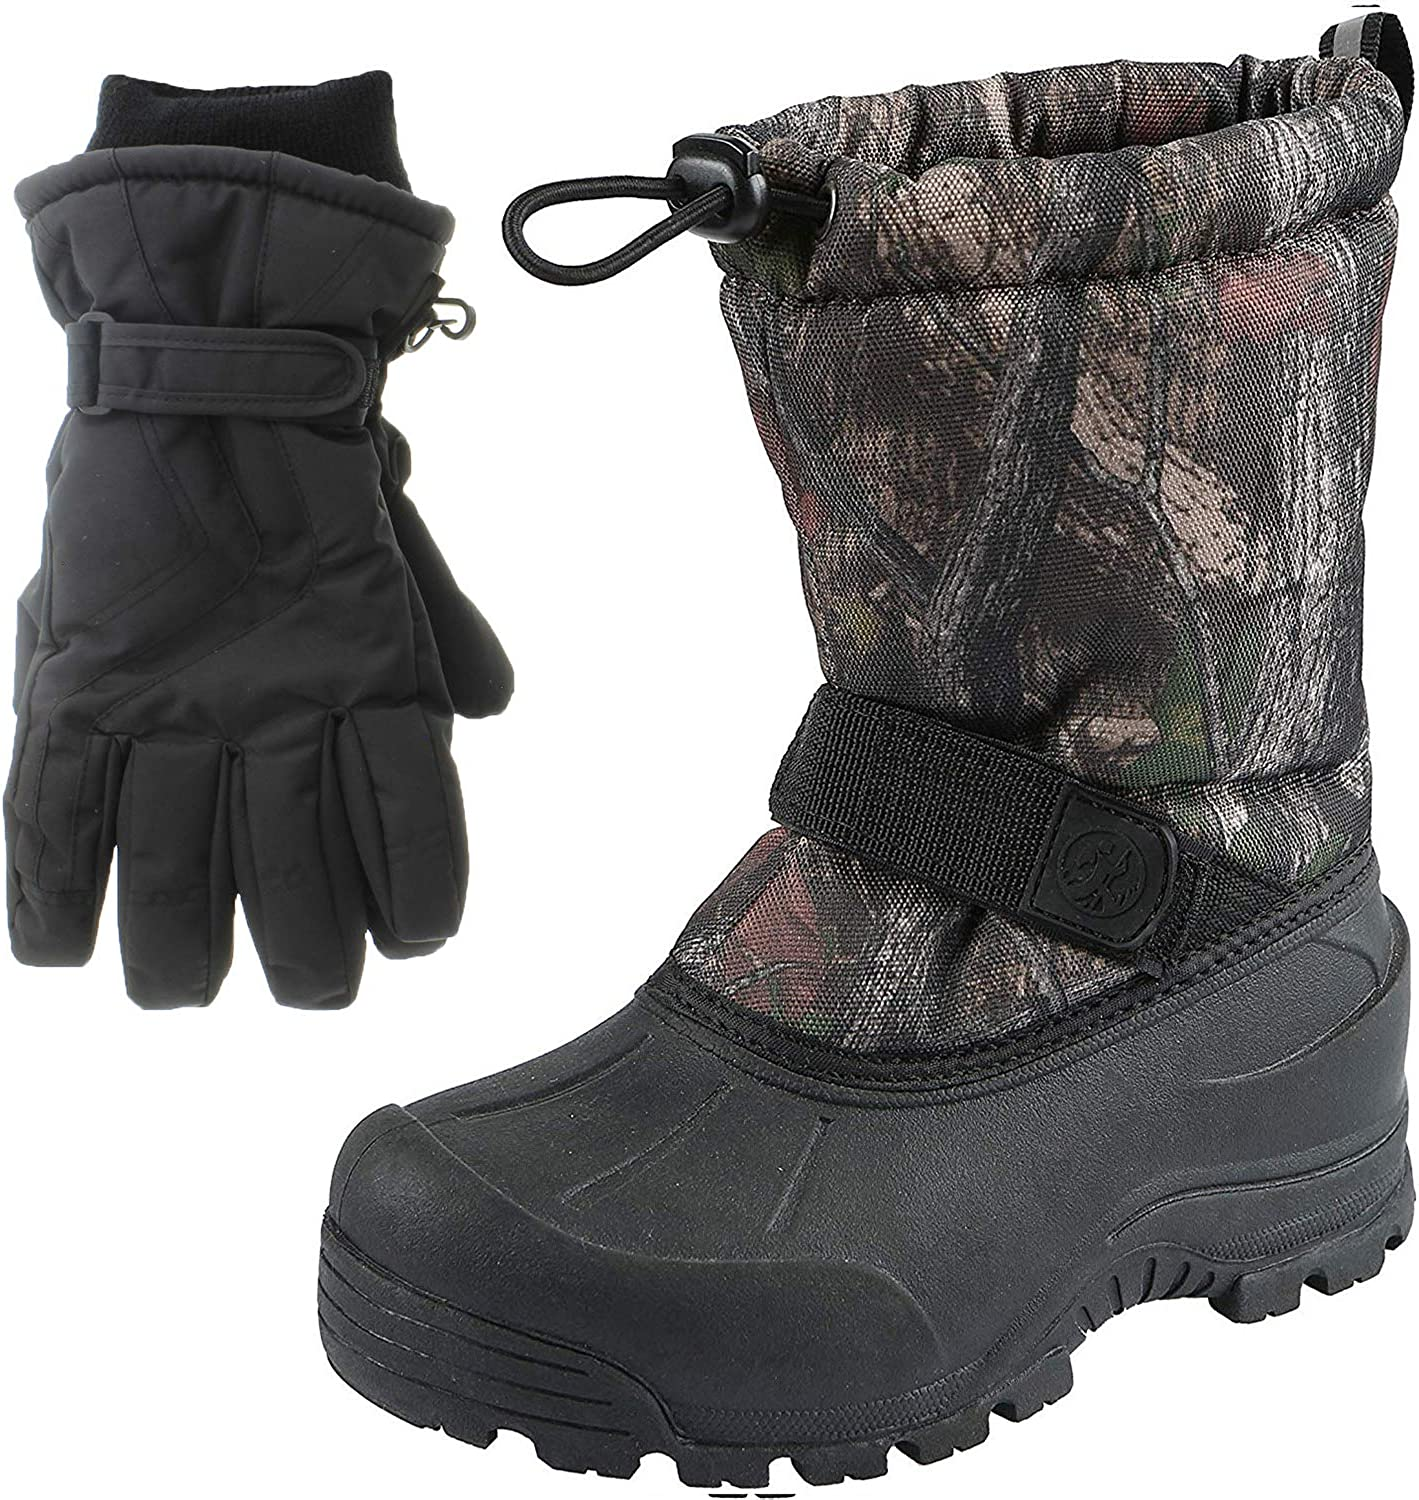   Northside Frosty Kids Winter Snow Boots & Gloves Combo for Girls & Boys   Snow Boots